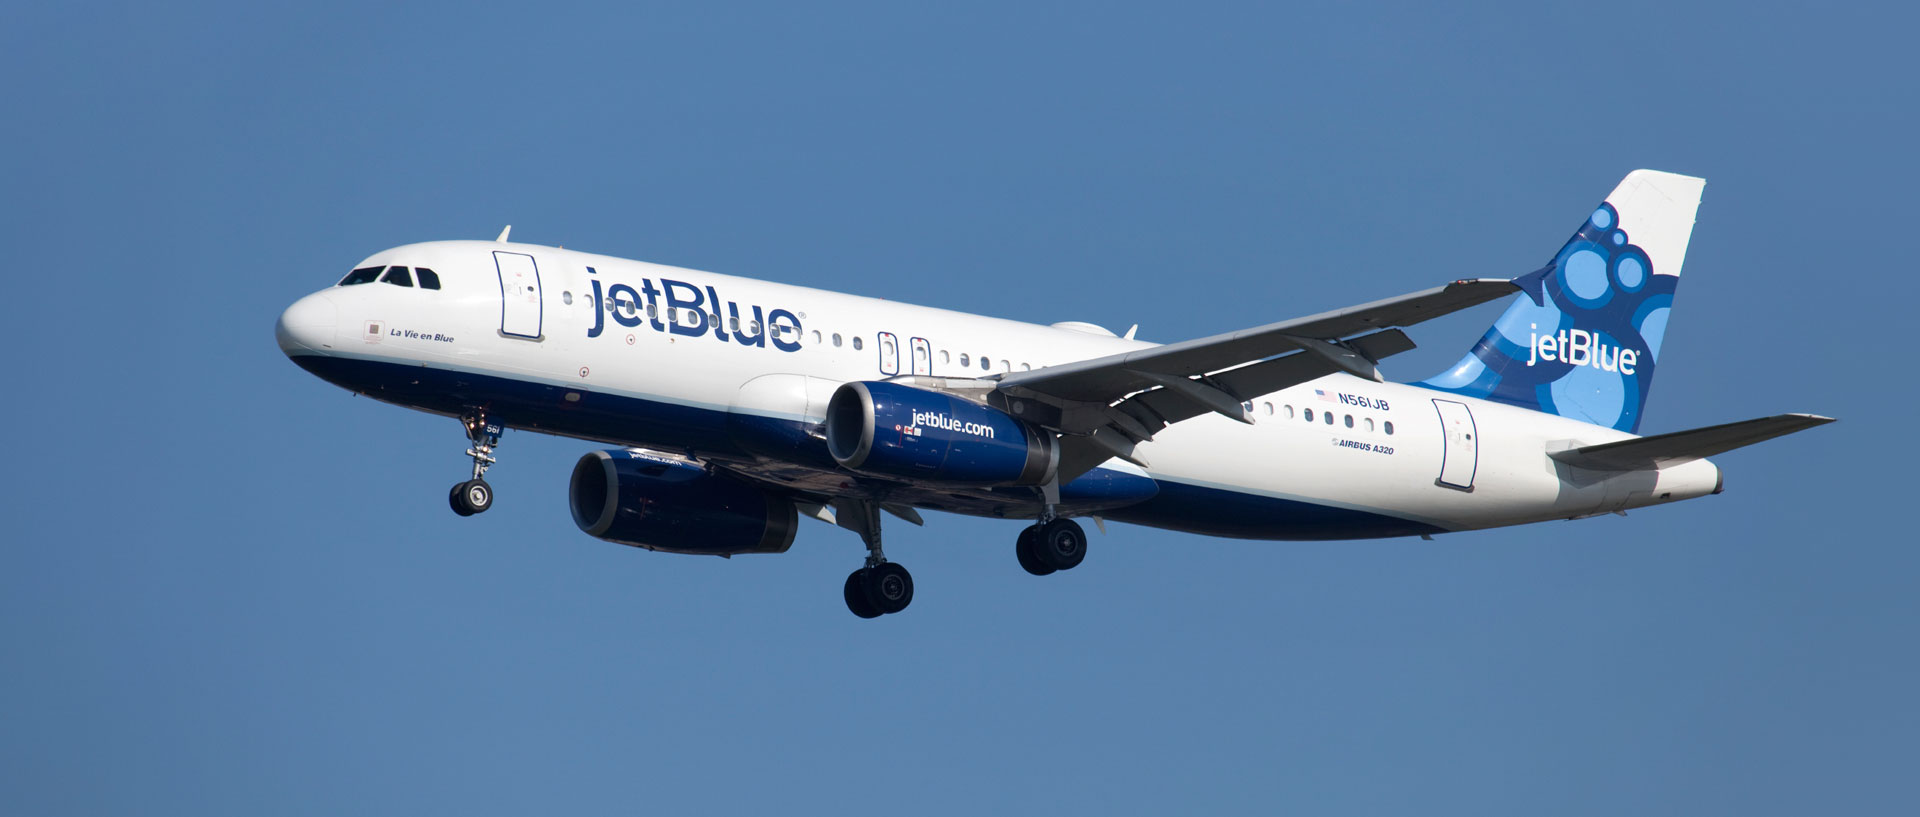 Best And Worst Airlines 2015 Survey Consumer Reports